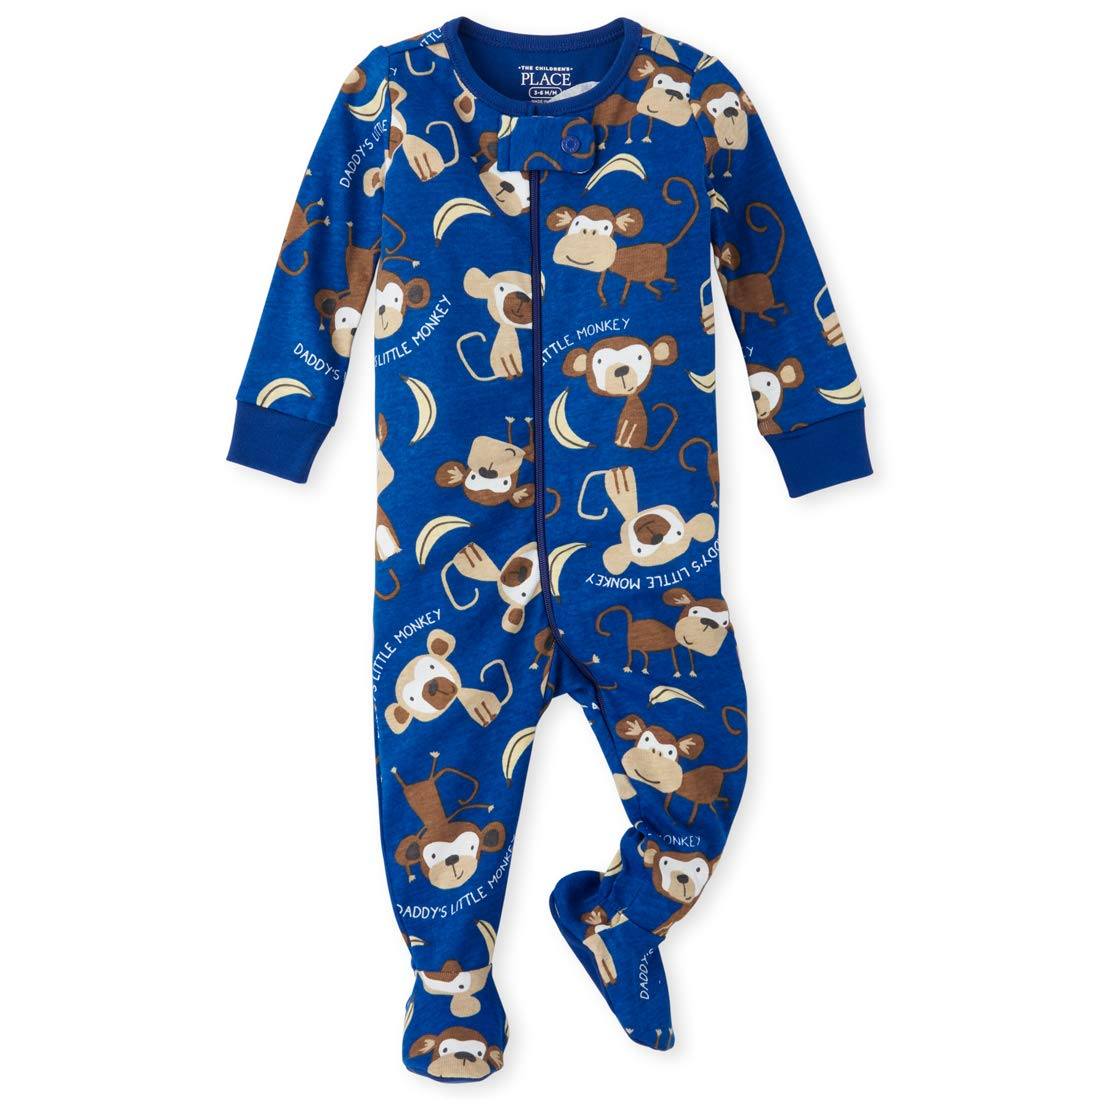 The Children's Place Baby Boys Printed Blanket Sleeper, Edge Blue, 5T by The Children's Place